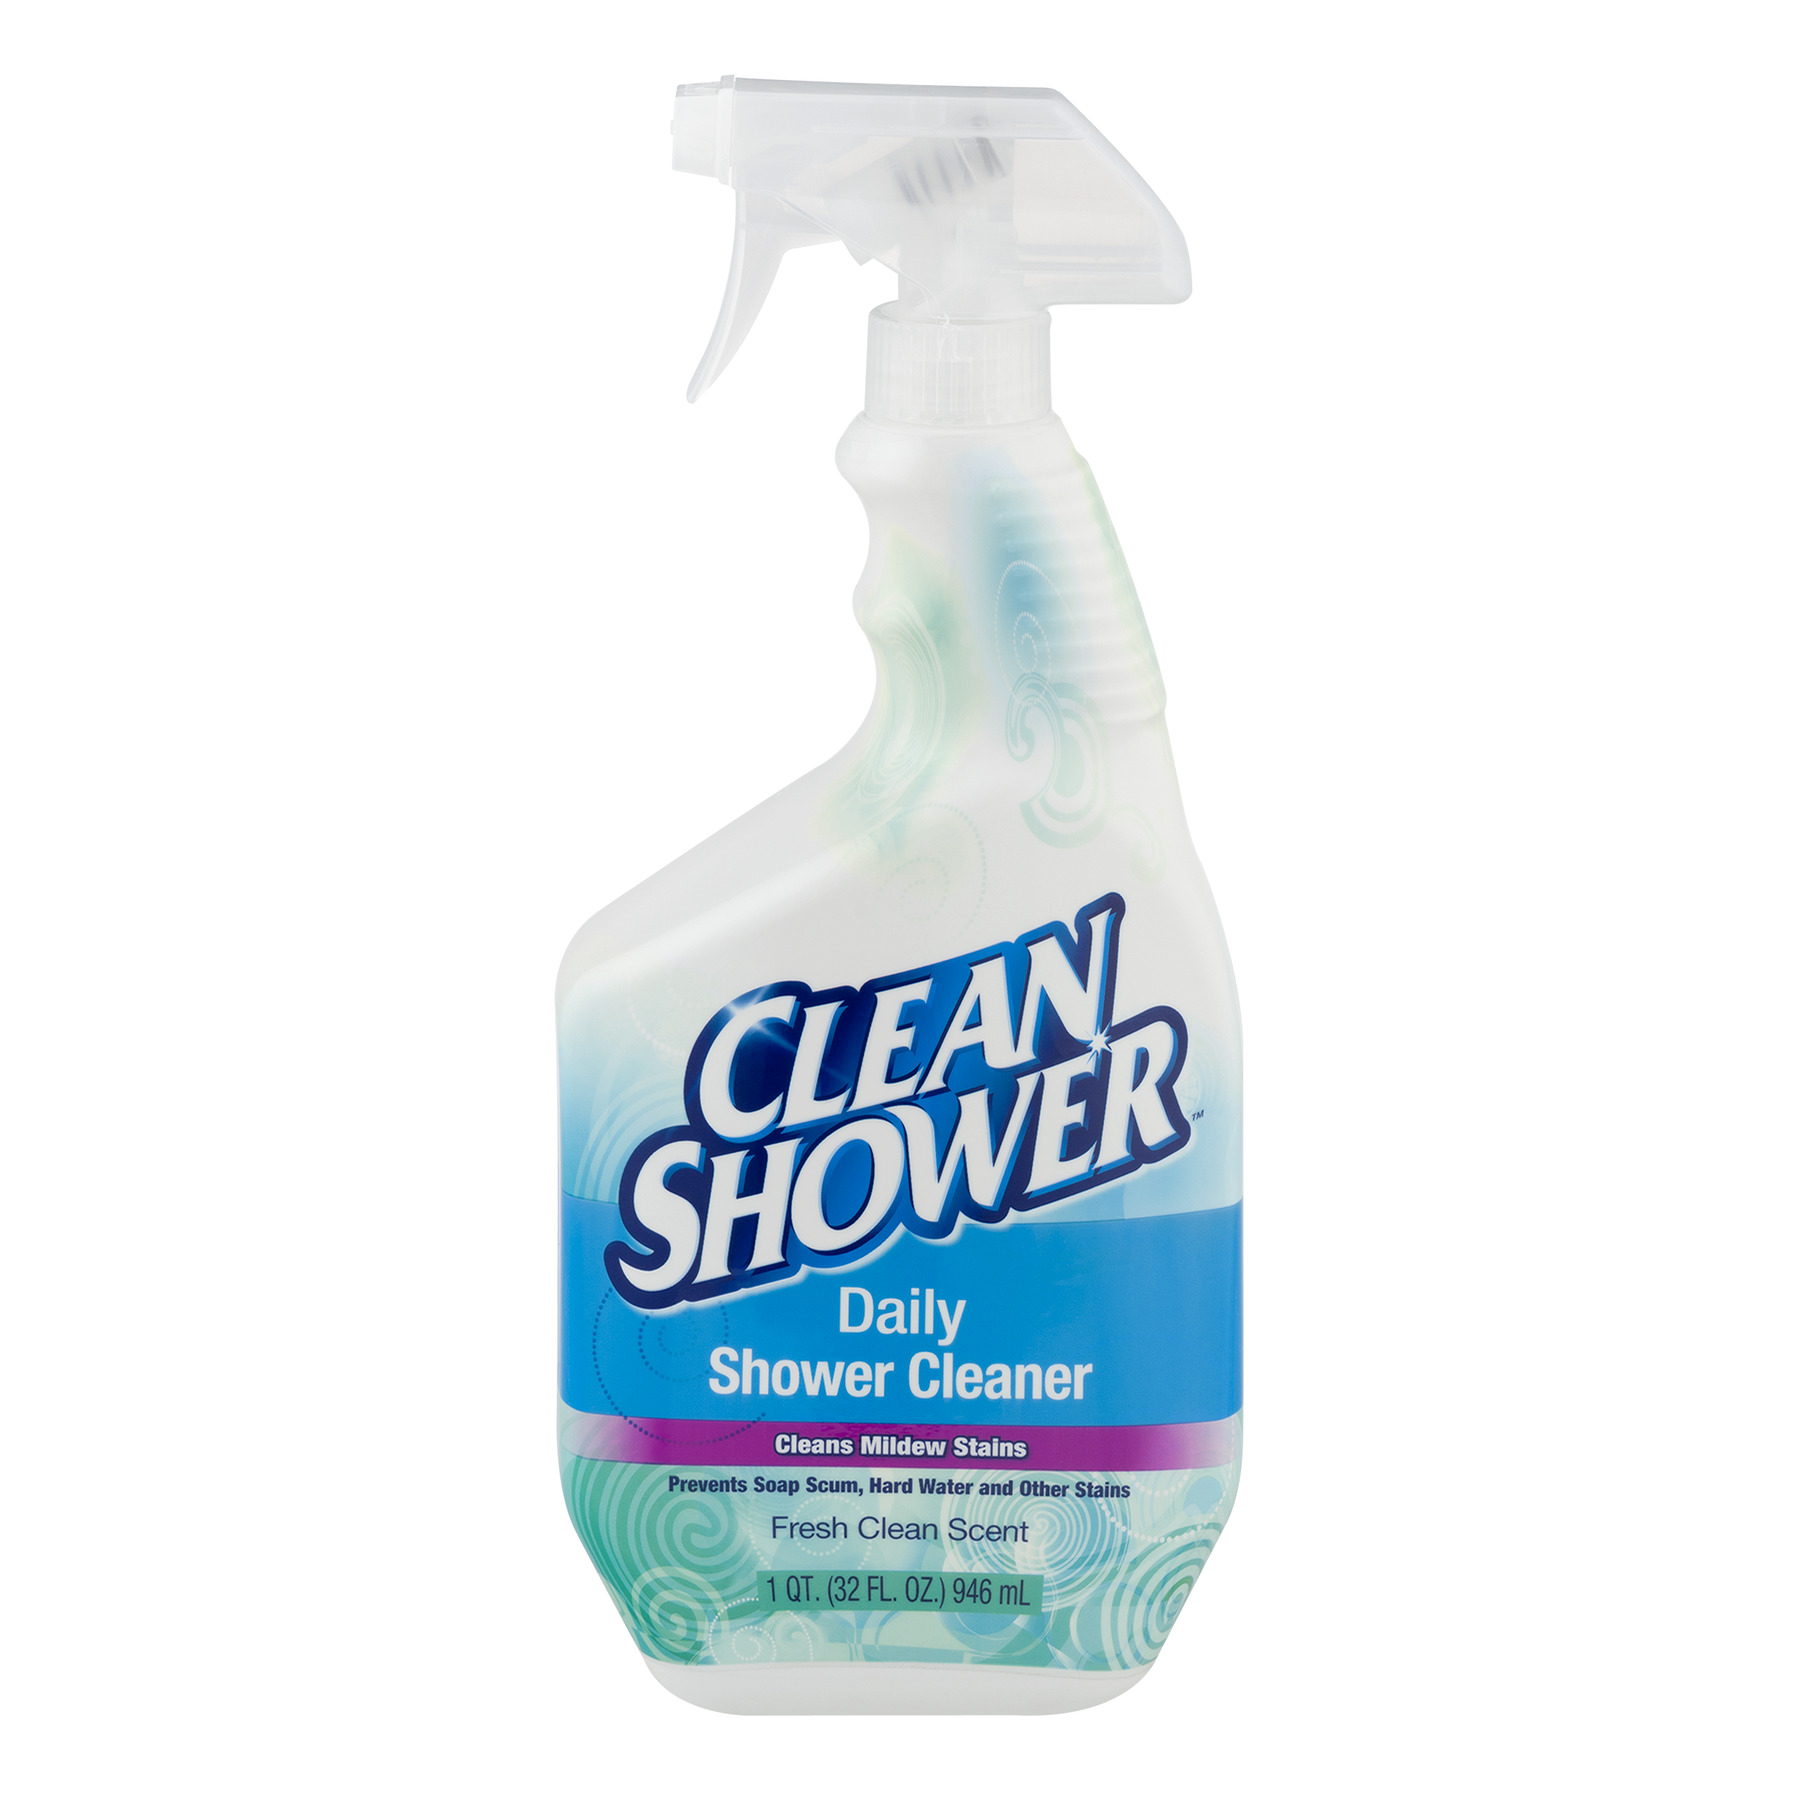 Beau Clean Shower Fresh Clean Scent Daily Shower Cleaner, 1 Qt